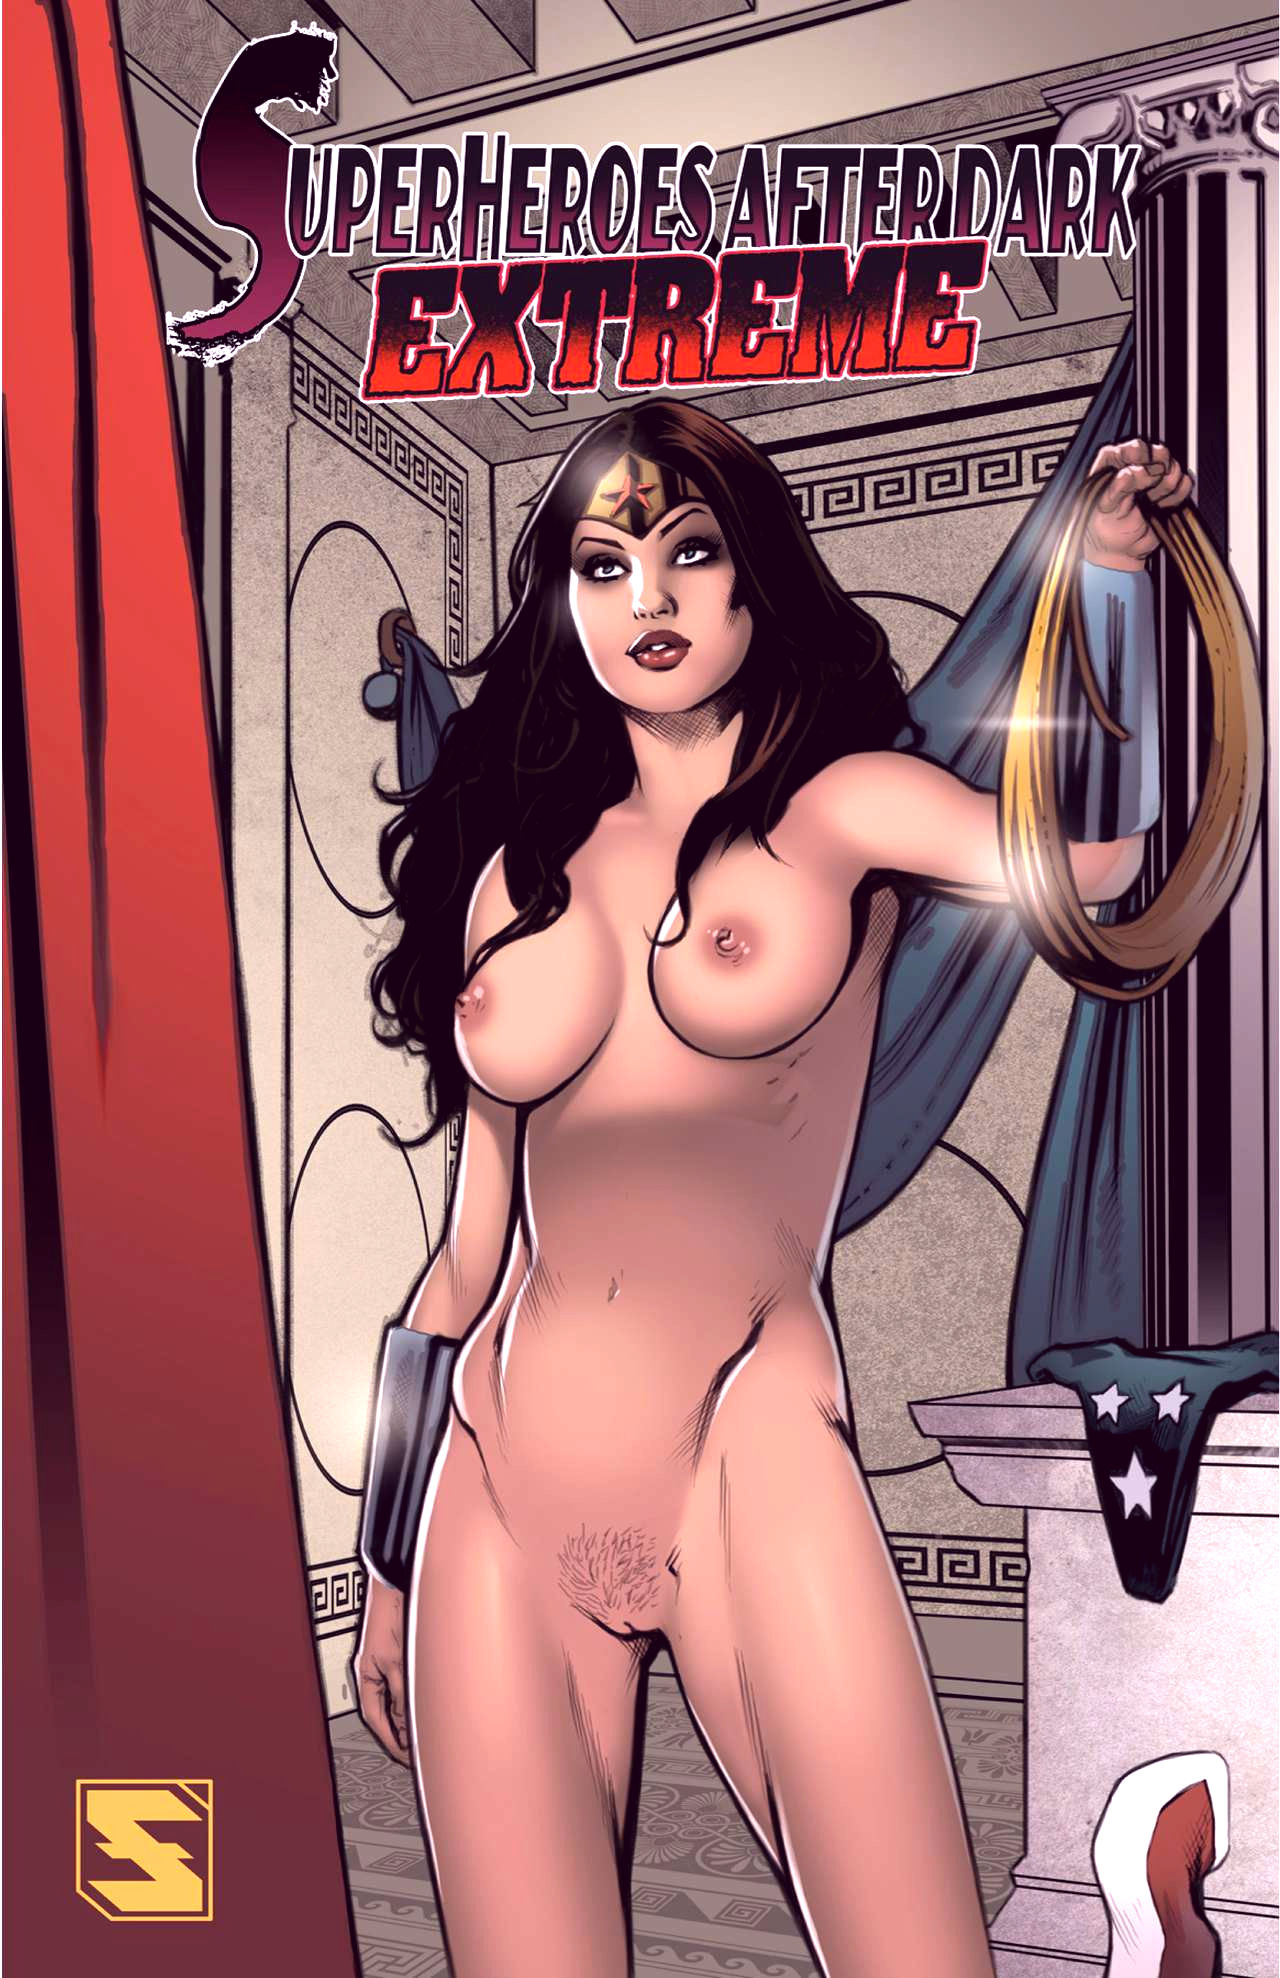 Superheroes after dark extreme porn comic picture 1